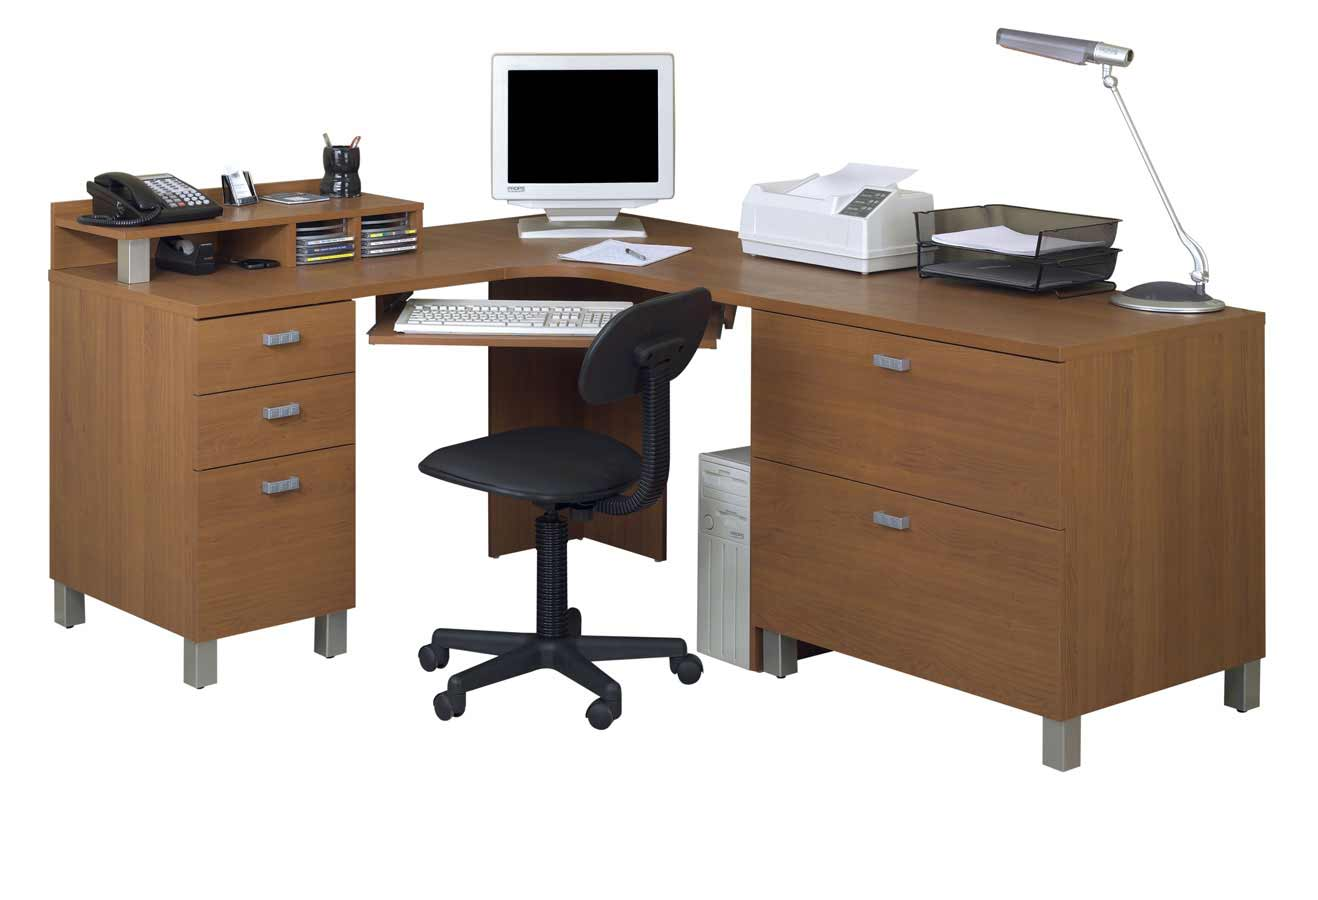 Nexera Ambiance Wooden Office Corner Computer Desk